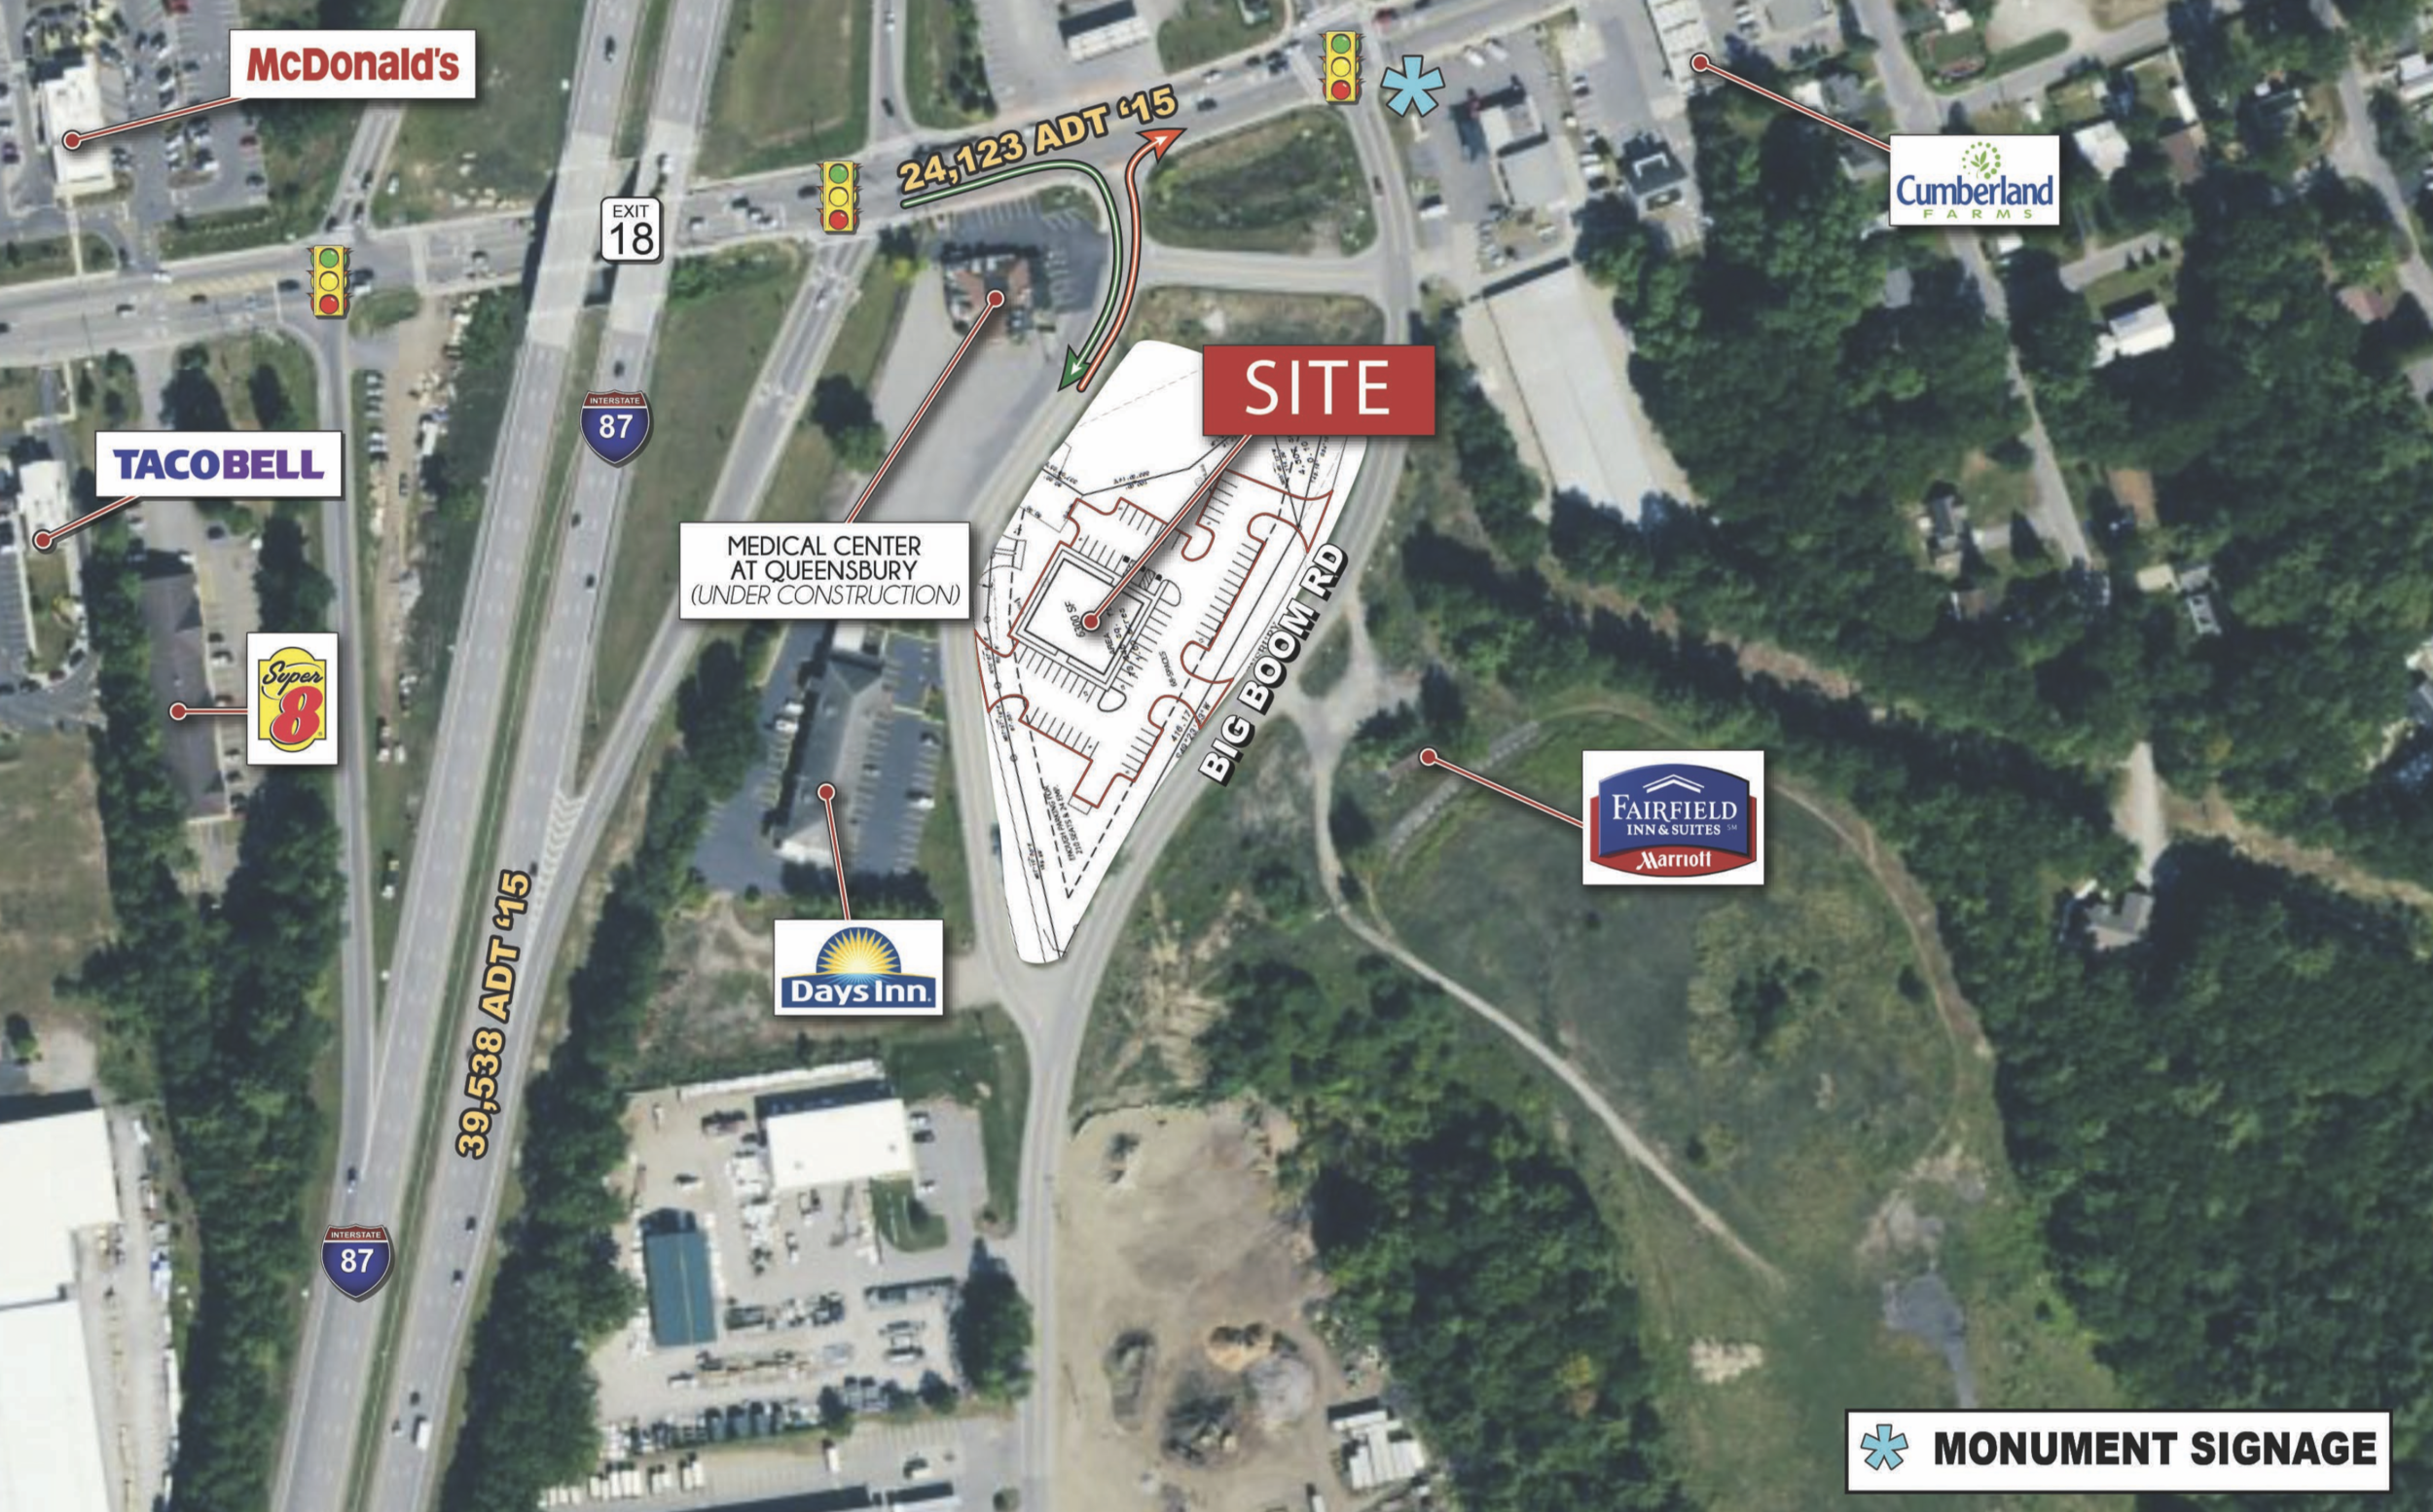 Location: Glens Falls, New York Size: Up to 6,300 SF on 1.7 acres